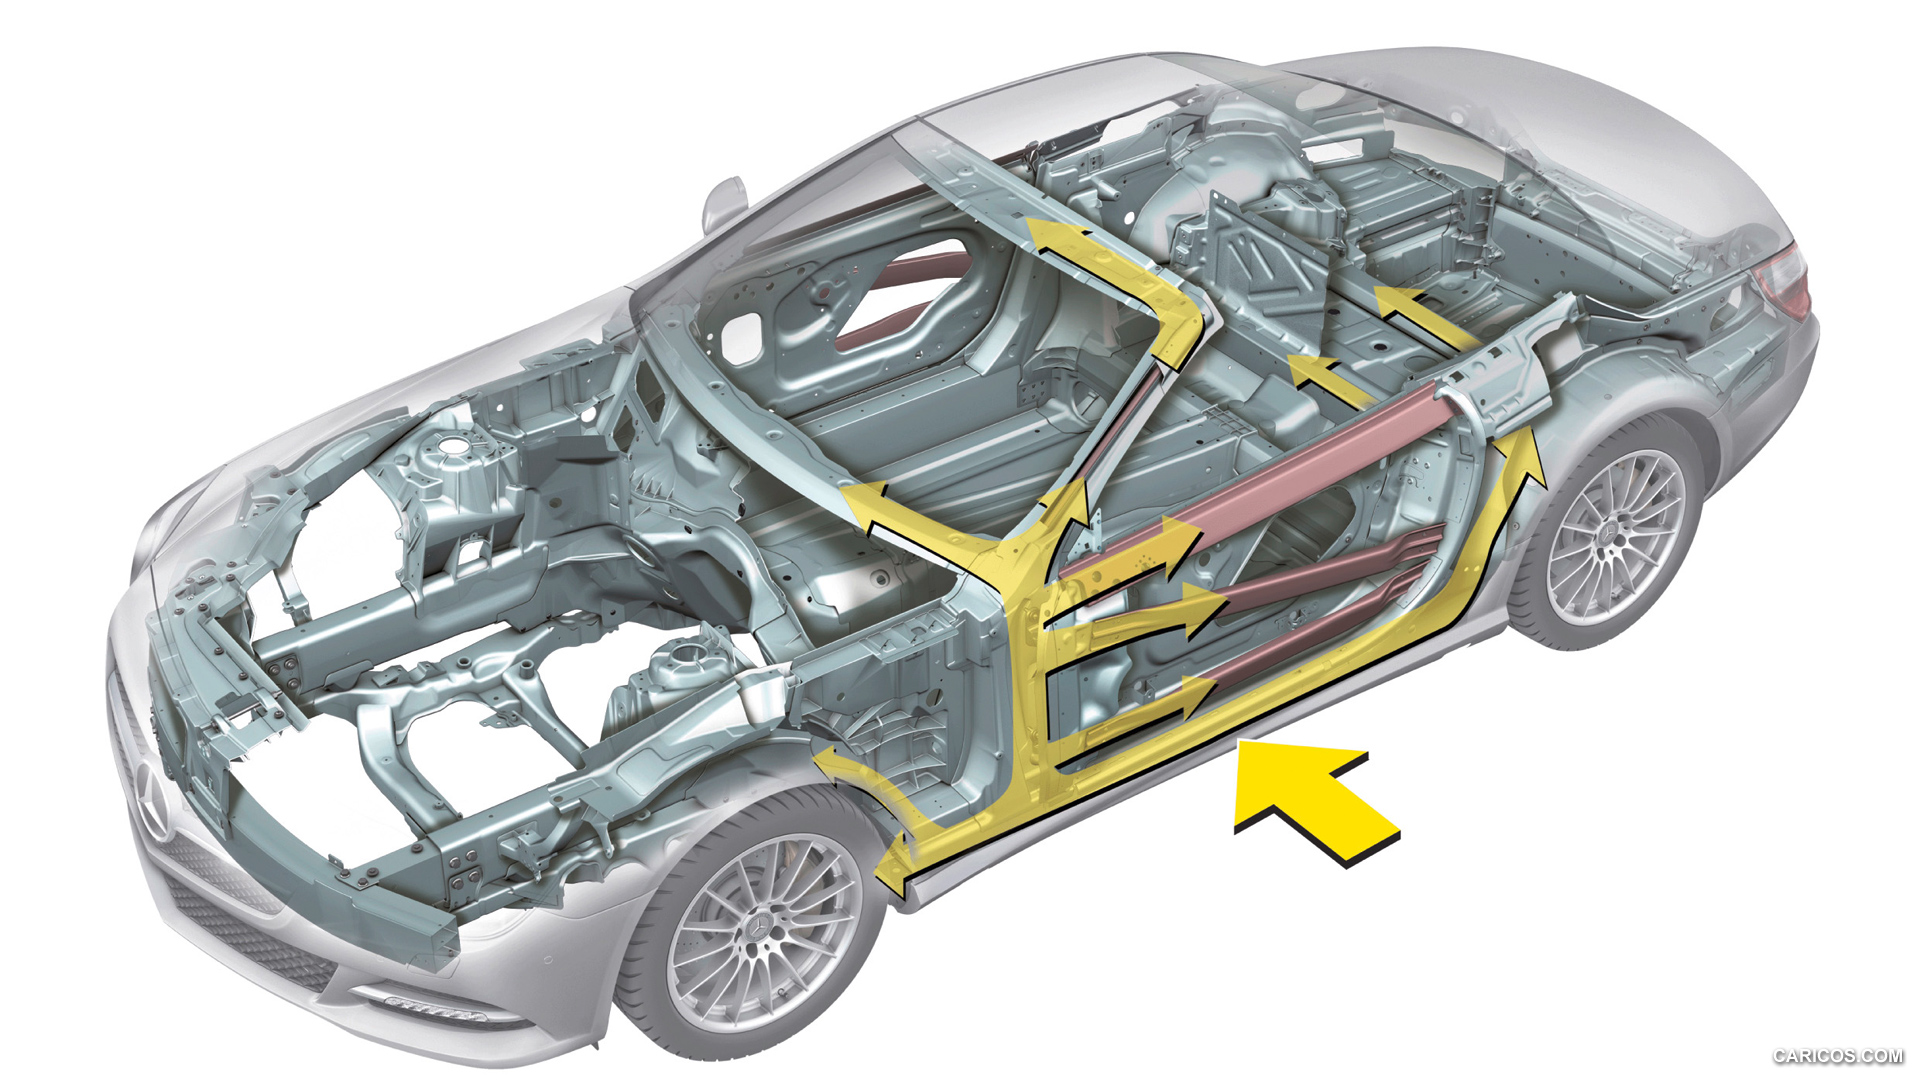 New ADR design rule to improve side impact safety protection